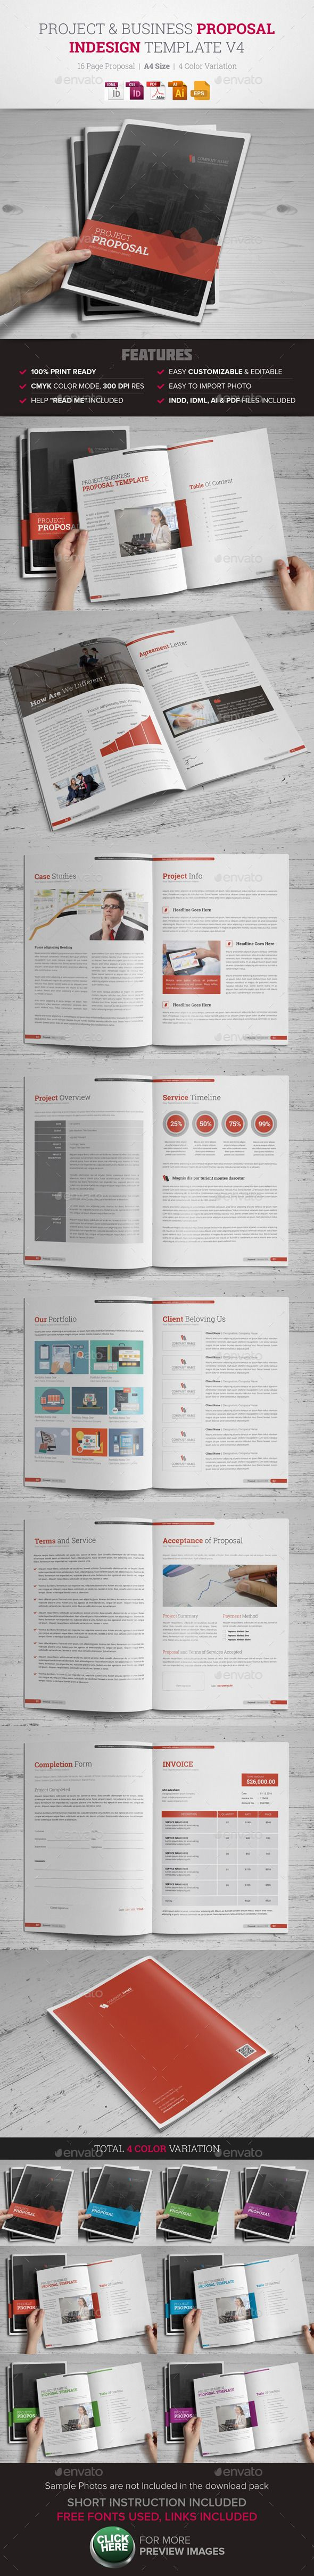 Project business proposal design v4 business proposal indesign project business proposal indesign template design download httpgraphicriver accmission Image collections